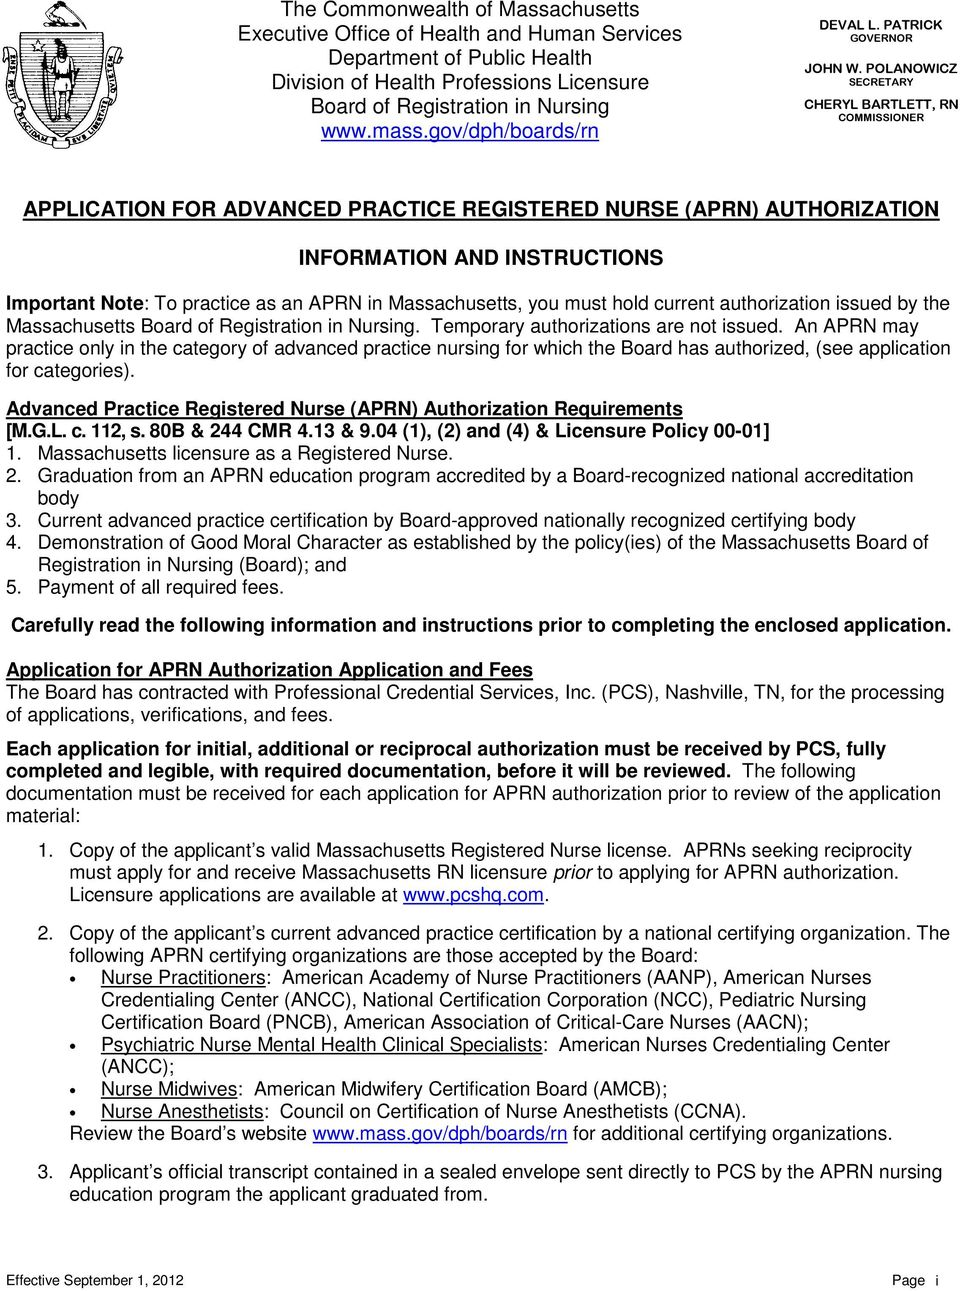 POLANOWICZ SECRETARY CHERYL BARTLETT, RN COMMISSIONER APPLICATION FOR ADVANCED PRACTICE REGISTERED NURSE (APRN) AUTHORIZATION INFORMATION AND INSTRUCTIONS Important Note: To practice as an APRN in